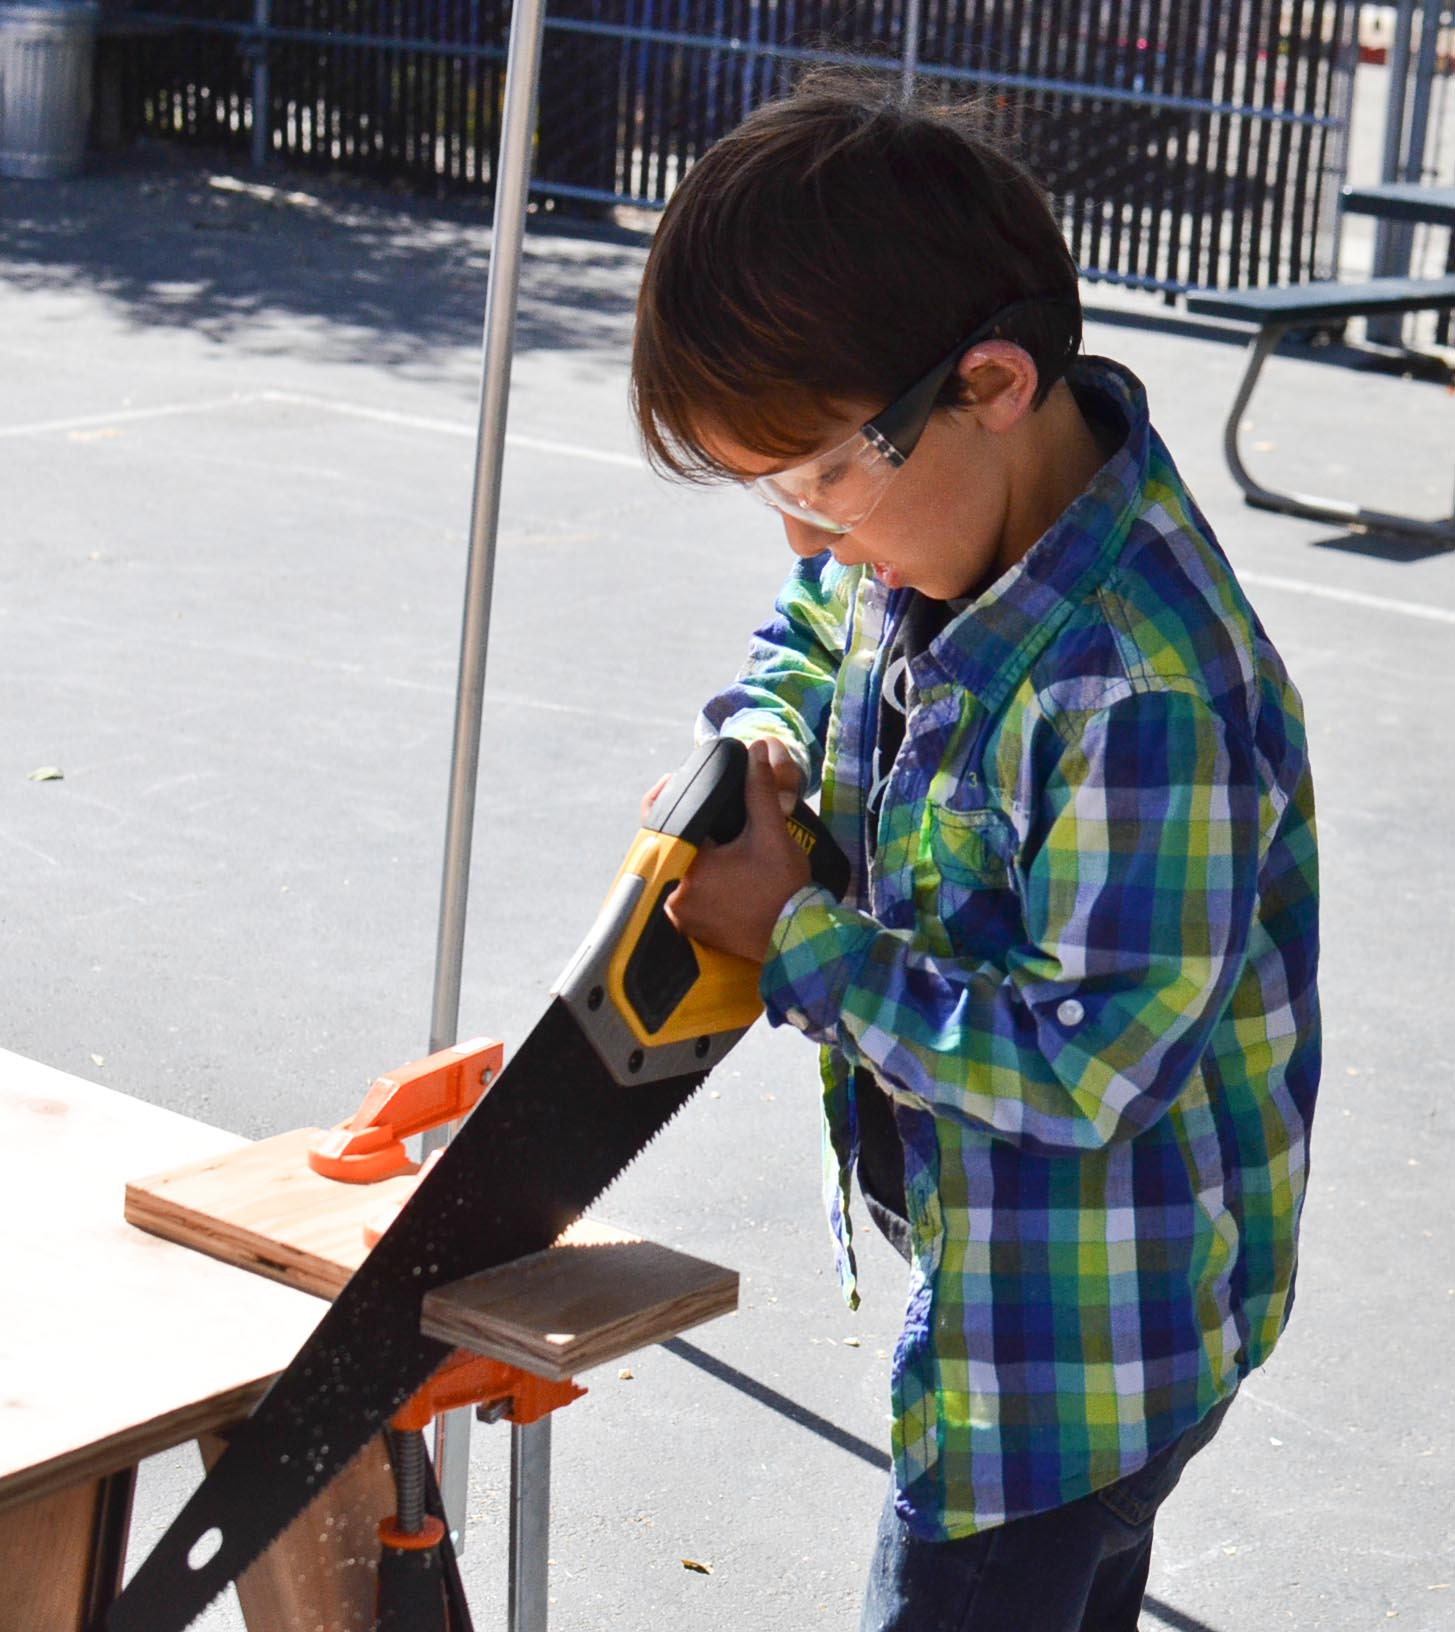 Griffin demonstrates great technique with the hand saw.